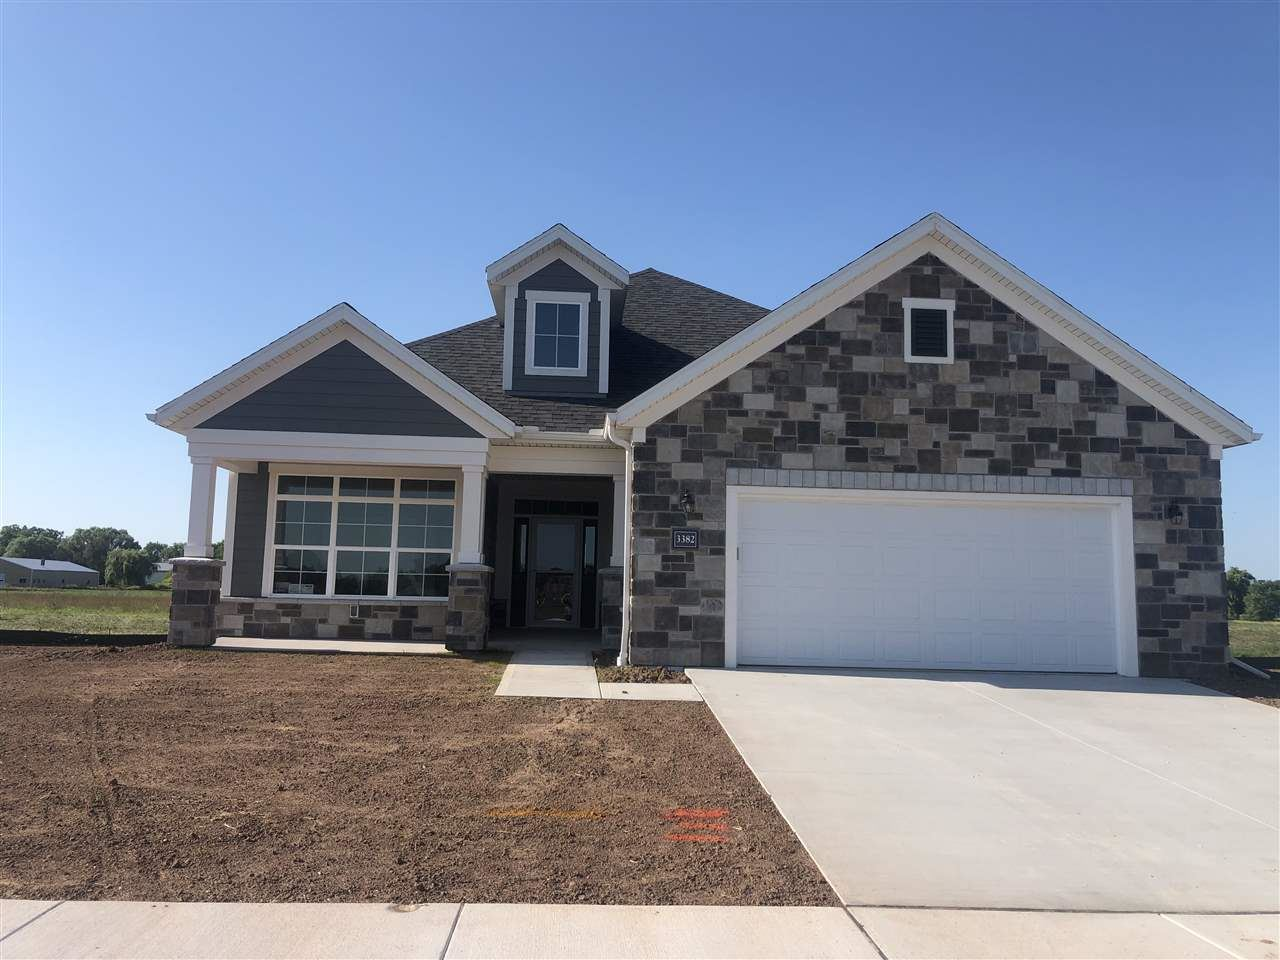 3382 LIBRA Court, Green Bay, WI 54311 - MLS#: 50220927